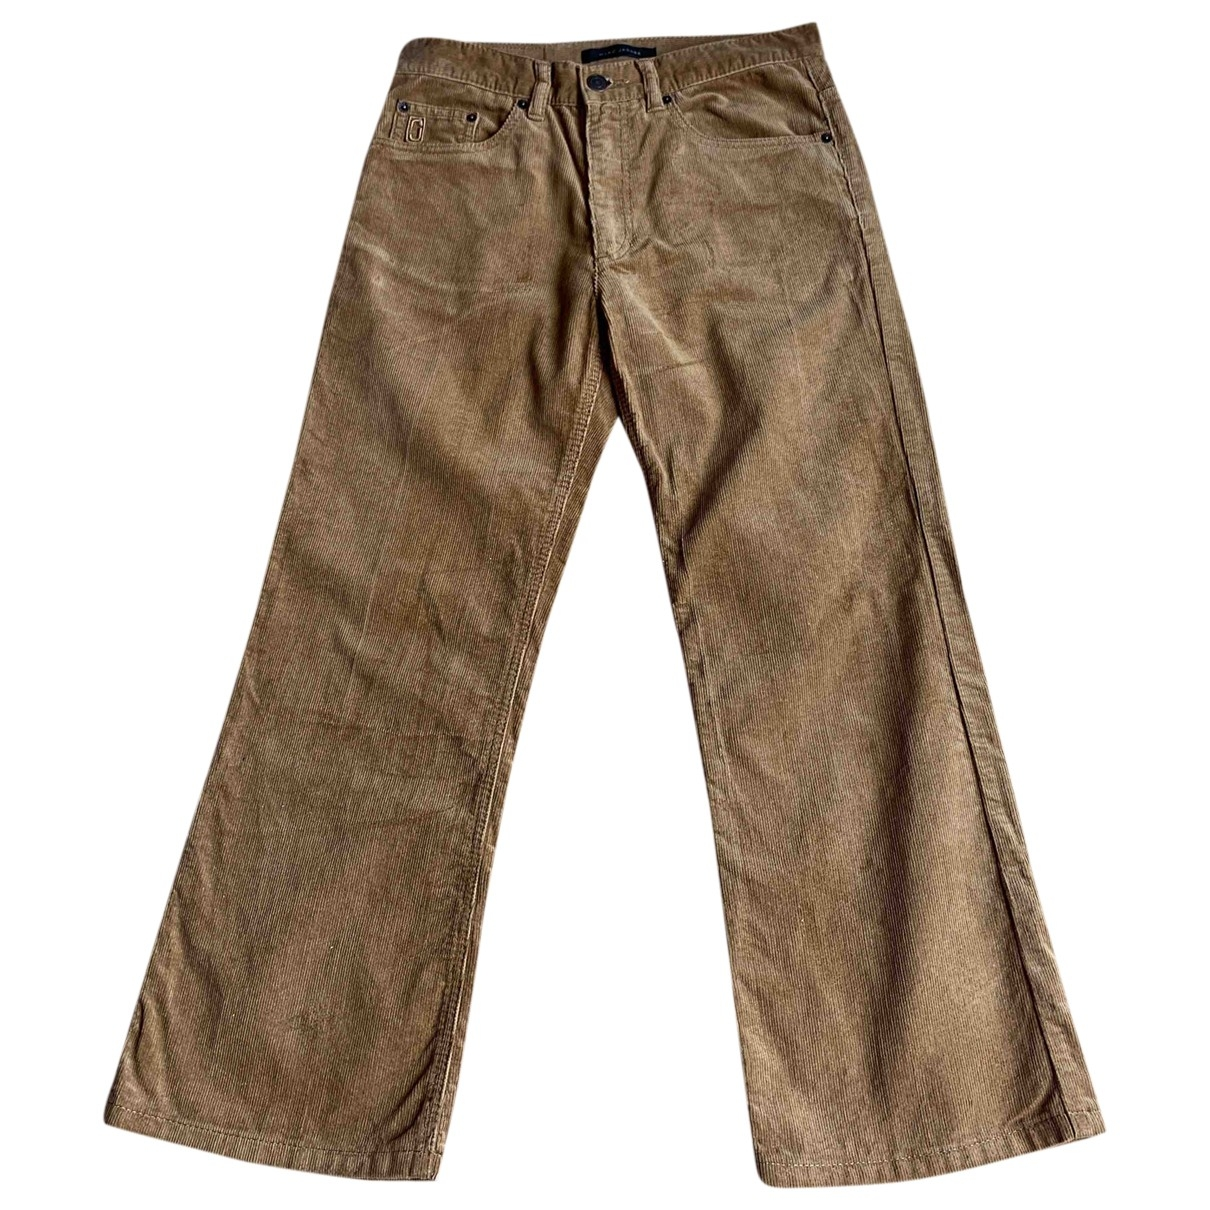 Marc Jacobs \N Camel Cotton Trousers for Women M International